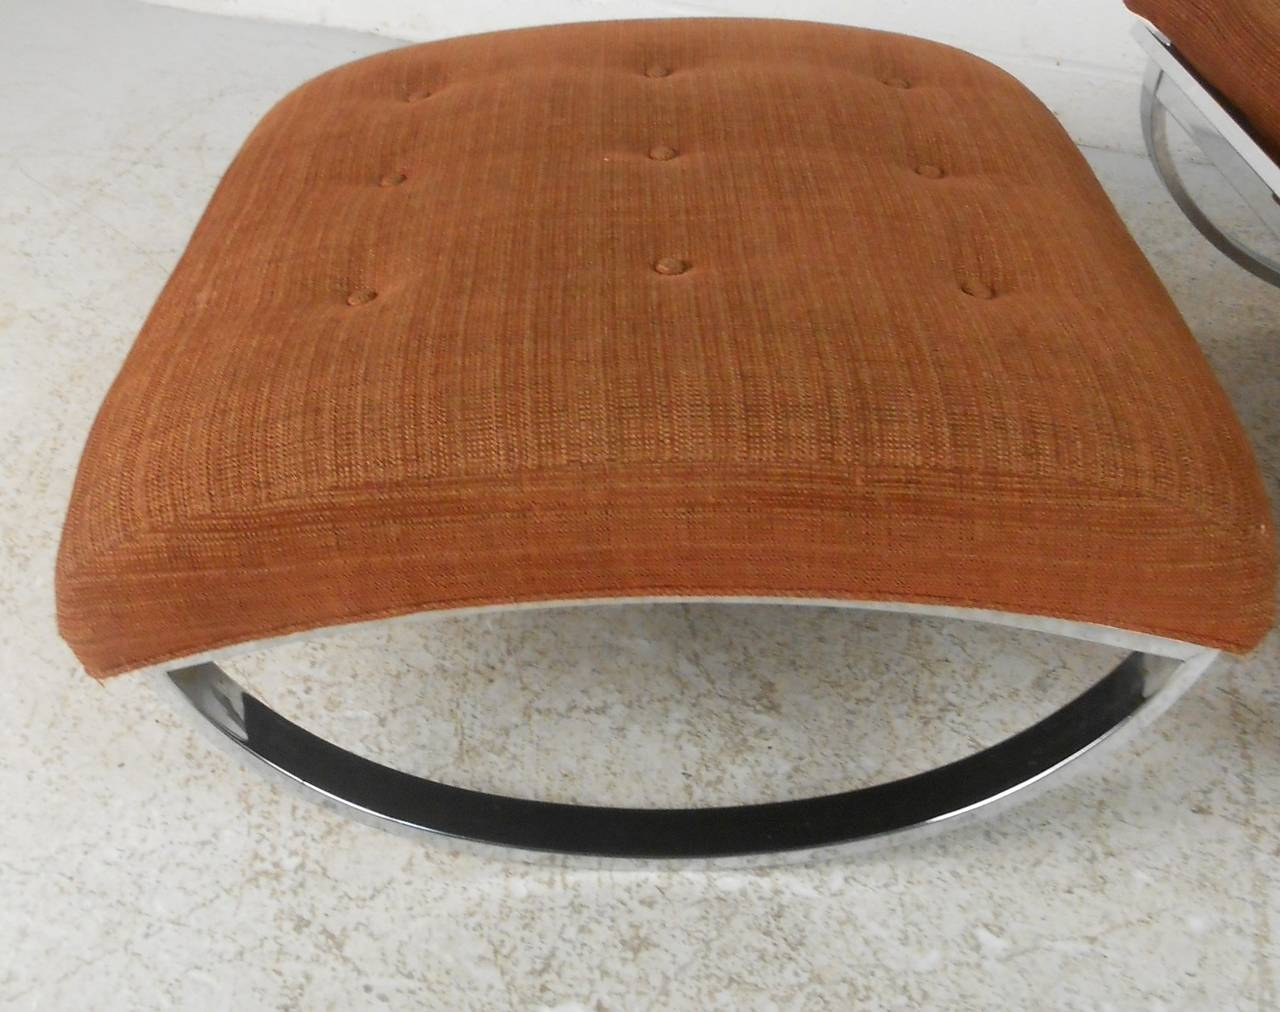 Milo Baughman Style Mid-Century Modern Renato Zevi Ellipse Chair and Ottoman For Sale 4